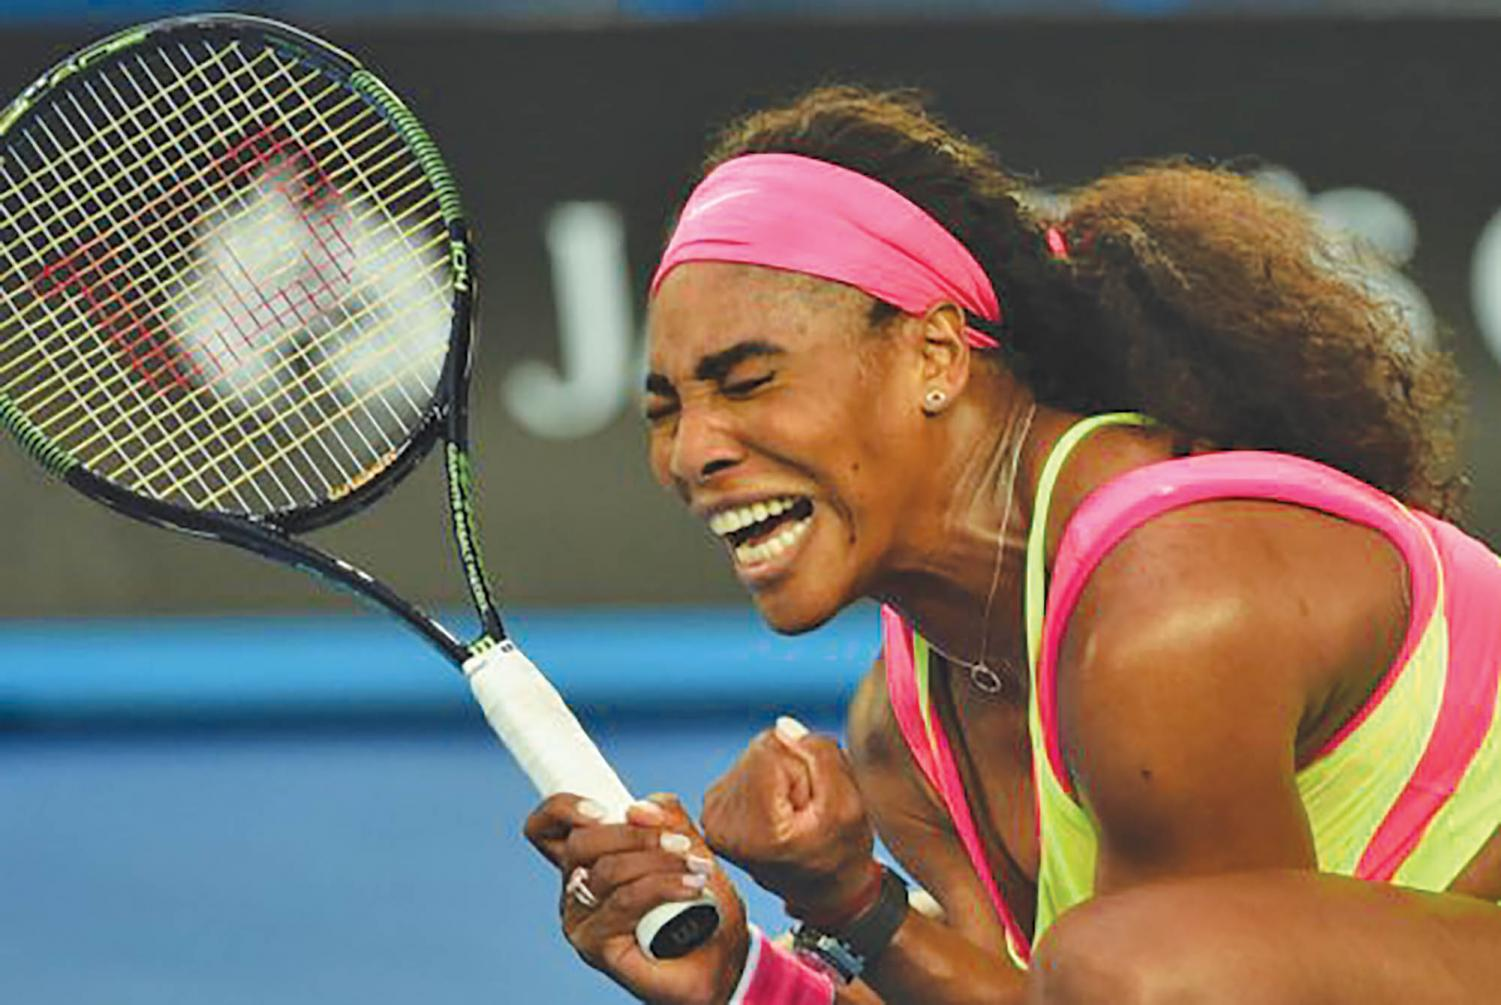 Serena Williams is one of the most impactful female athletes.